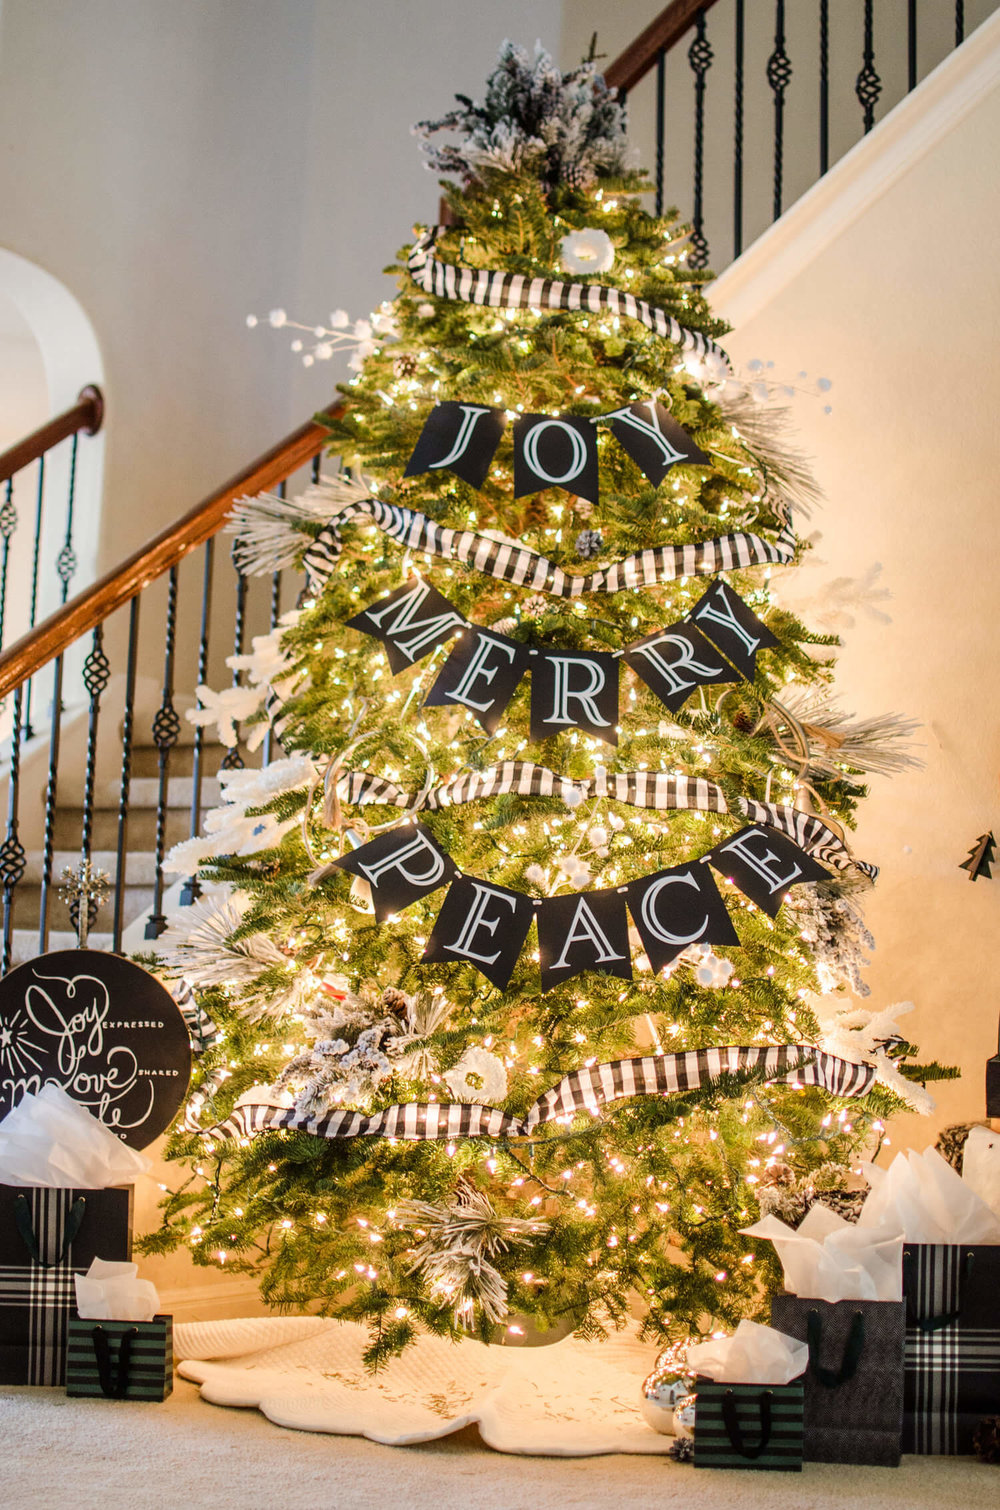 Christmas Tree Inspiration for next year, black and white details